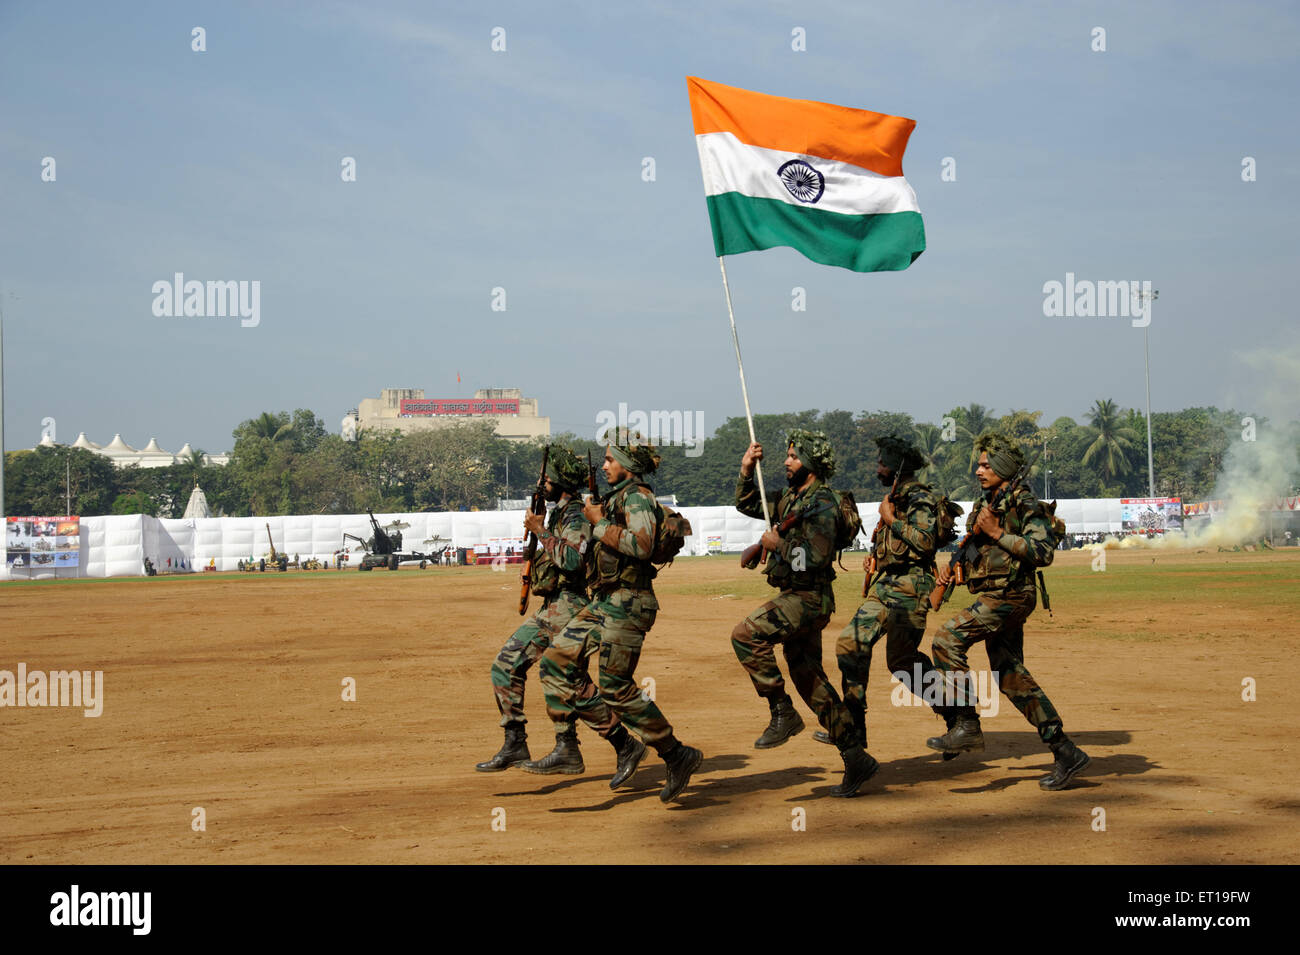 Indian Army High Resolution Stock Photography And Images Alamy